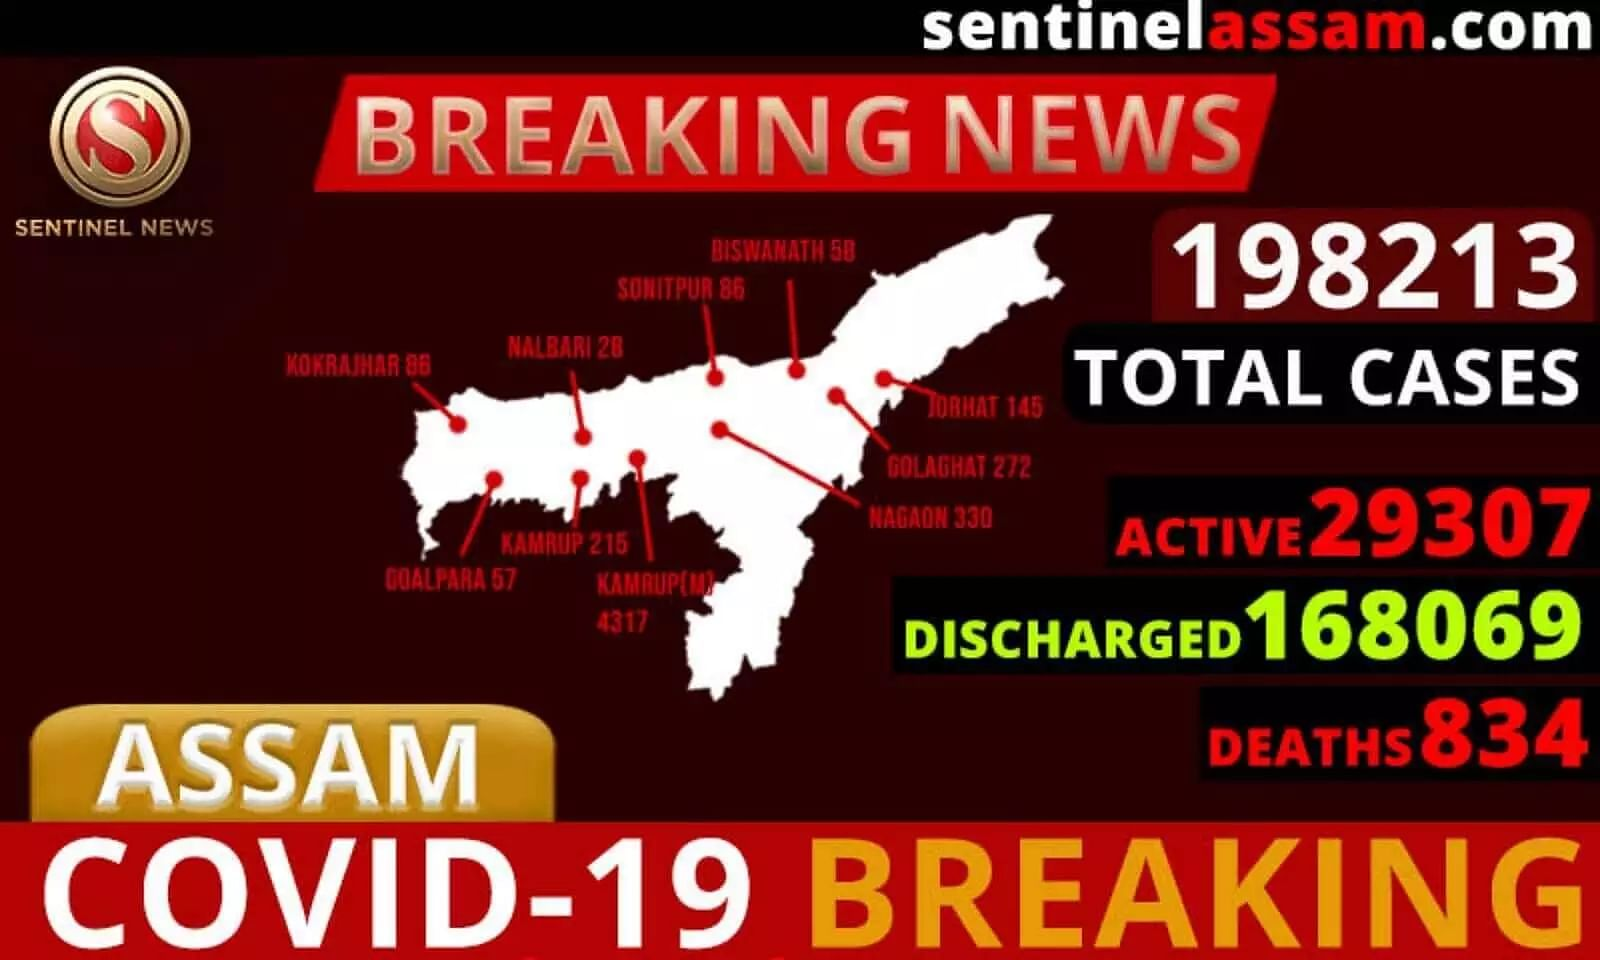 Assam COVID-19 Cases Rise to 198213; One Thousand Four Hundred Twenty Seven test Positive